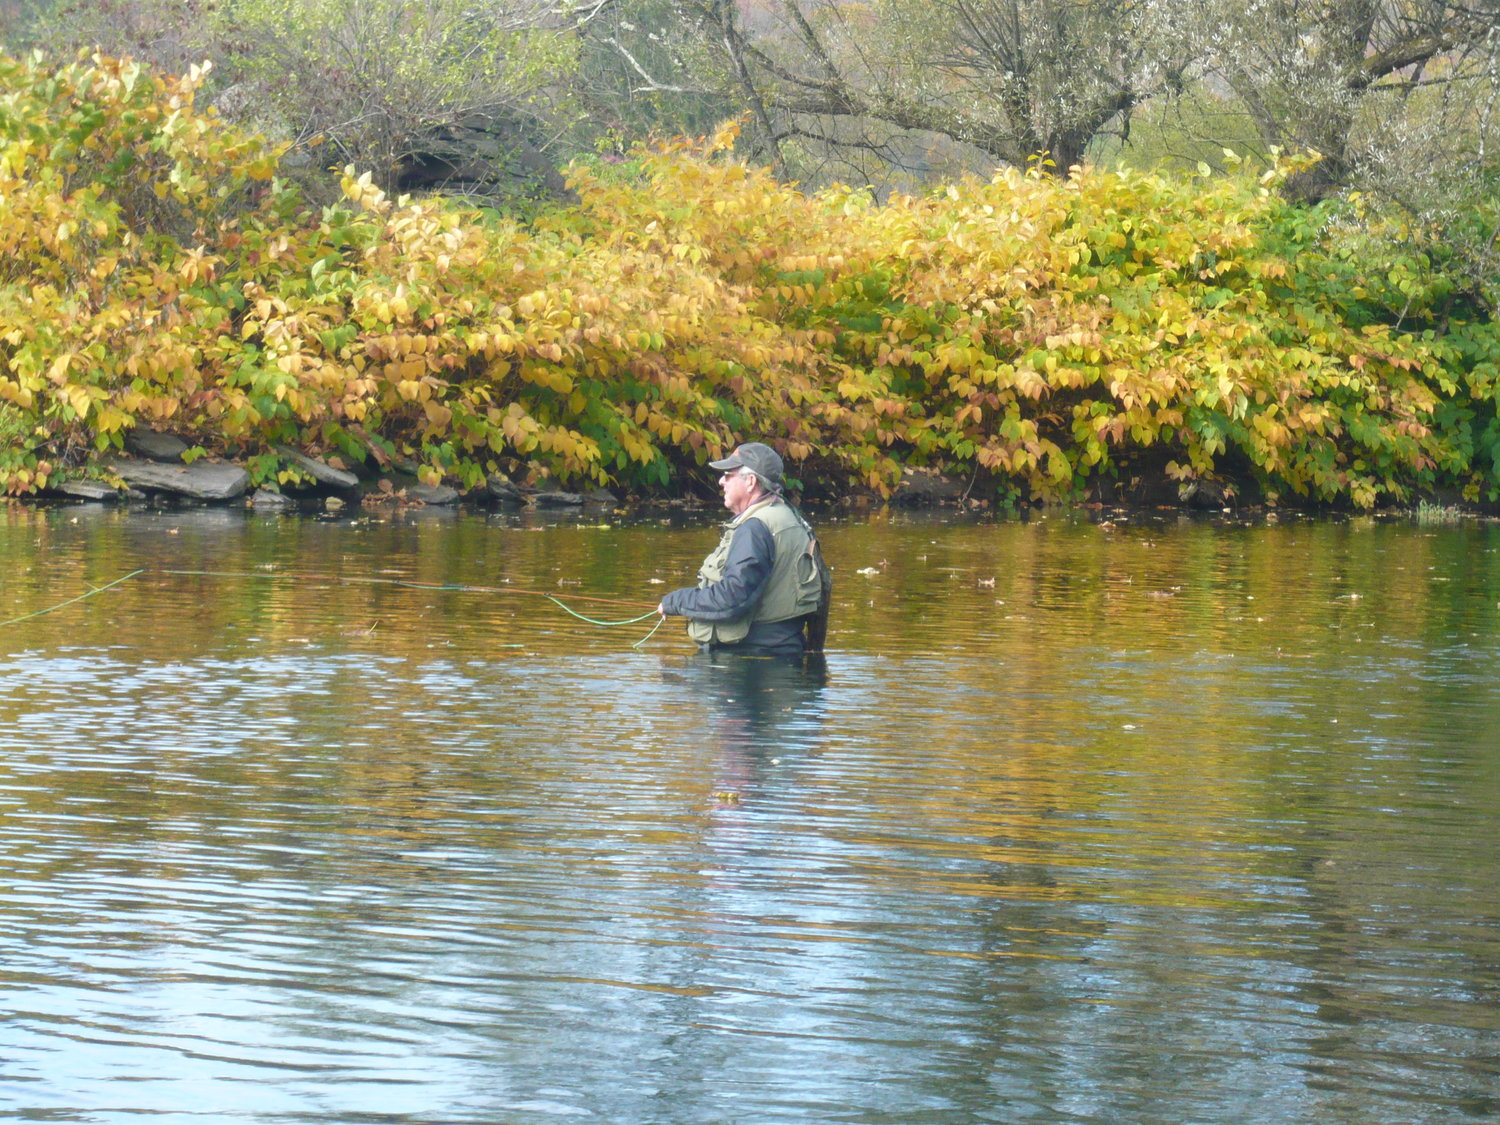 An angler fishing across and downstream.